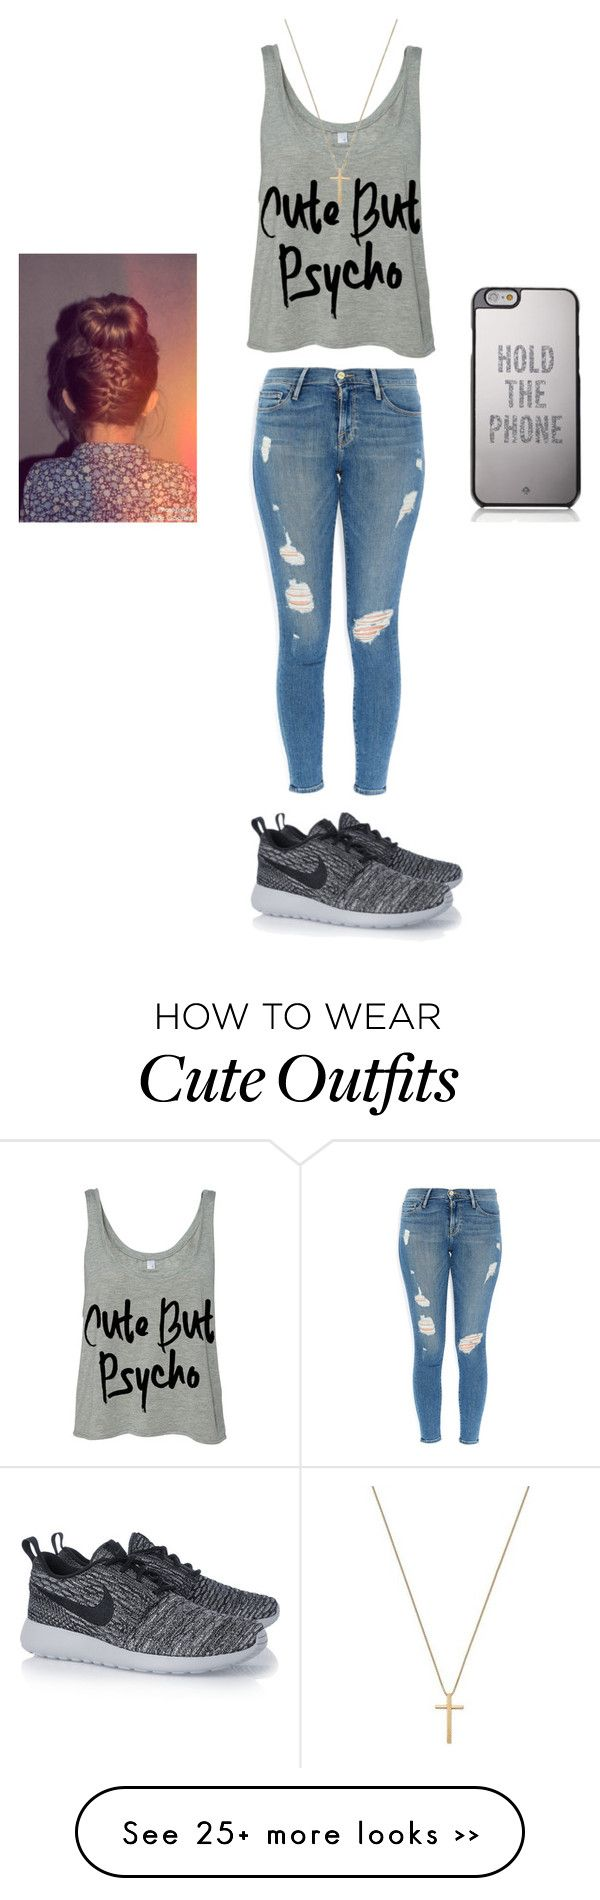 """mall?"" by paytonnnhiiii on Polyvore featuring Frame Denim, NIKE, Kate Spade and Gucci"